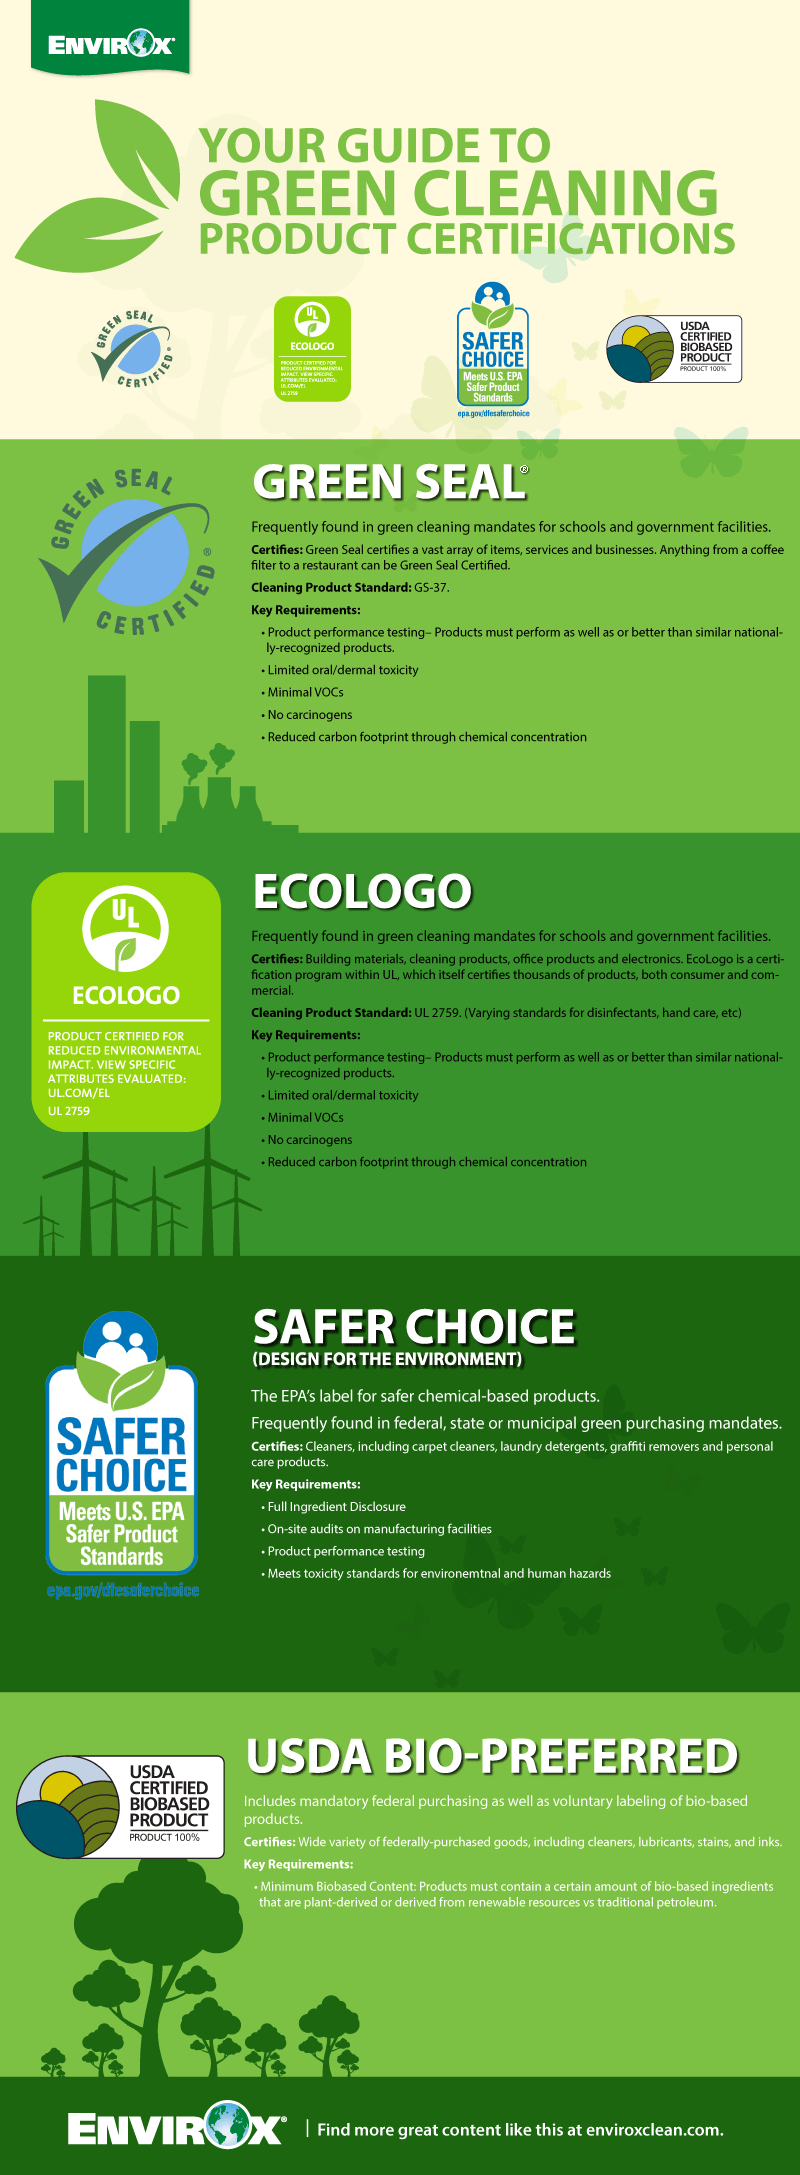 Your Guide To Green Product Certifications Envirox